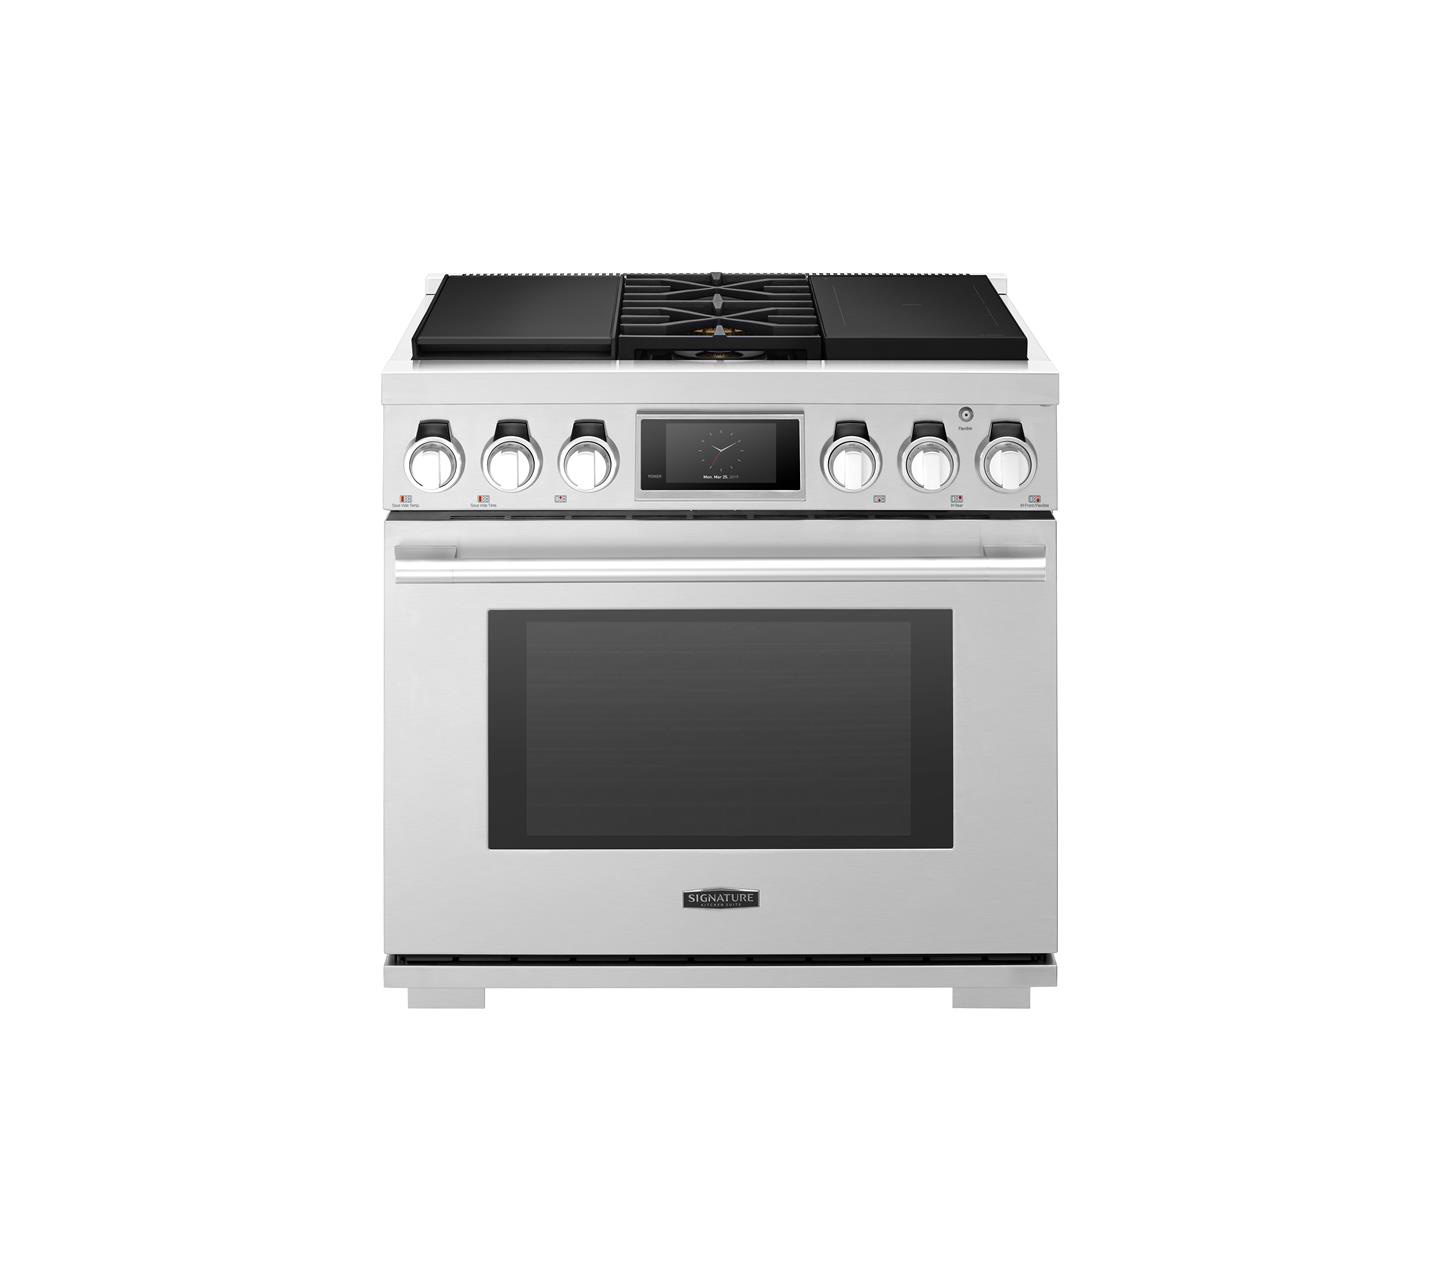 36-inch Dual Fuel Pro Range with Sous Vide and Induction